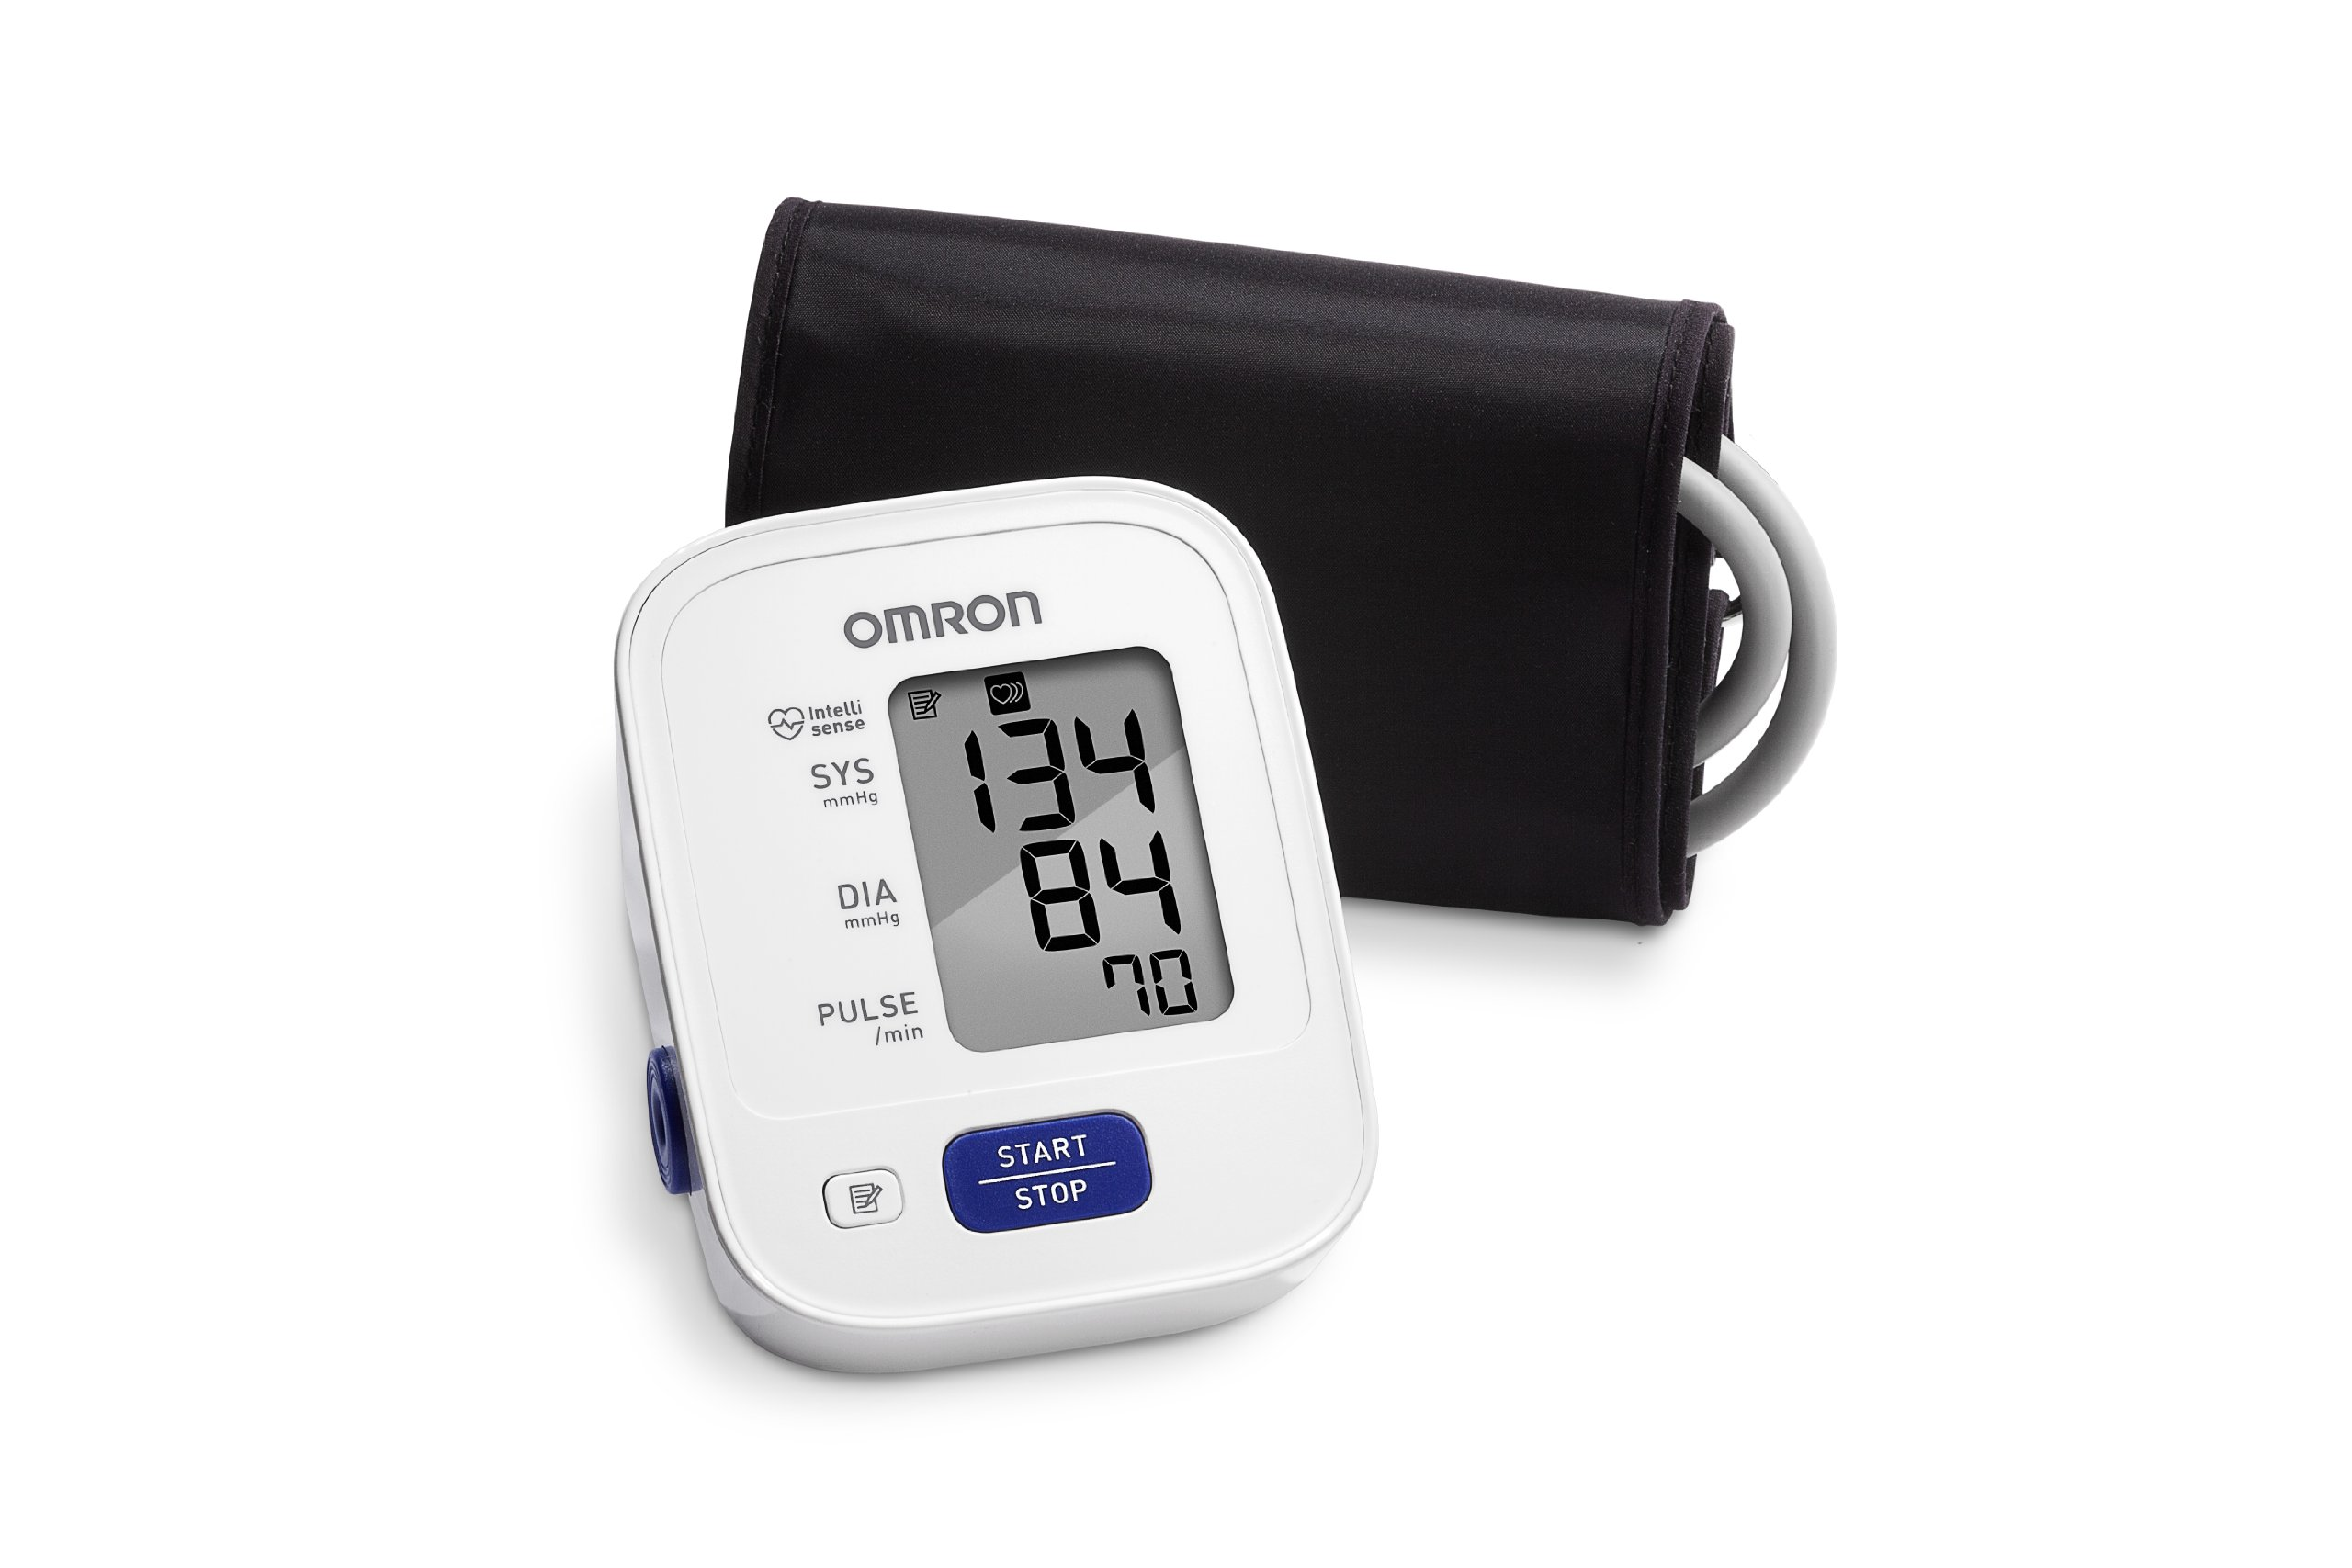 Omron Mc 246 Mc246 60 Second Digital Rigid Thermometer Termometer 3 Series Upper Arm Blood Pressure Monitor 14 Reading Memory